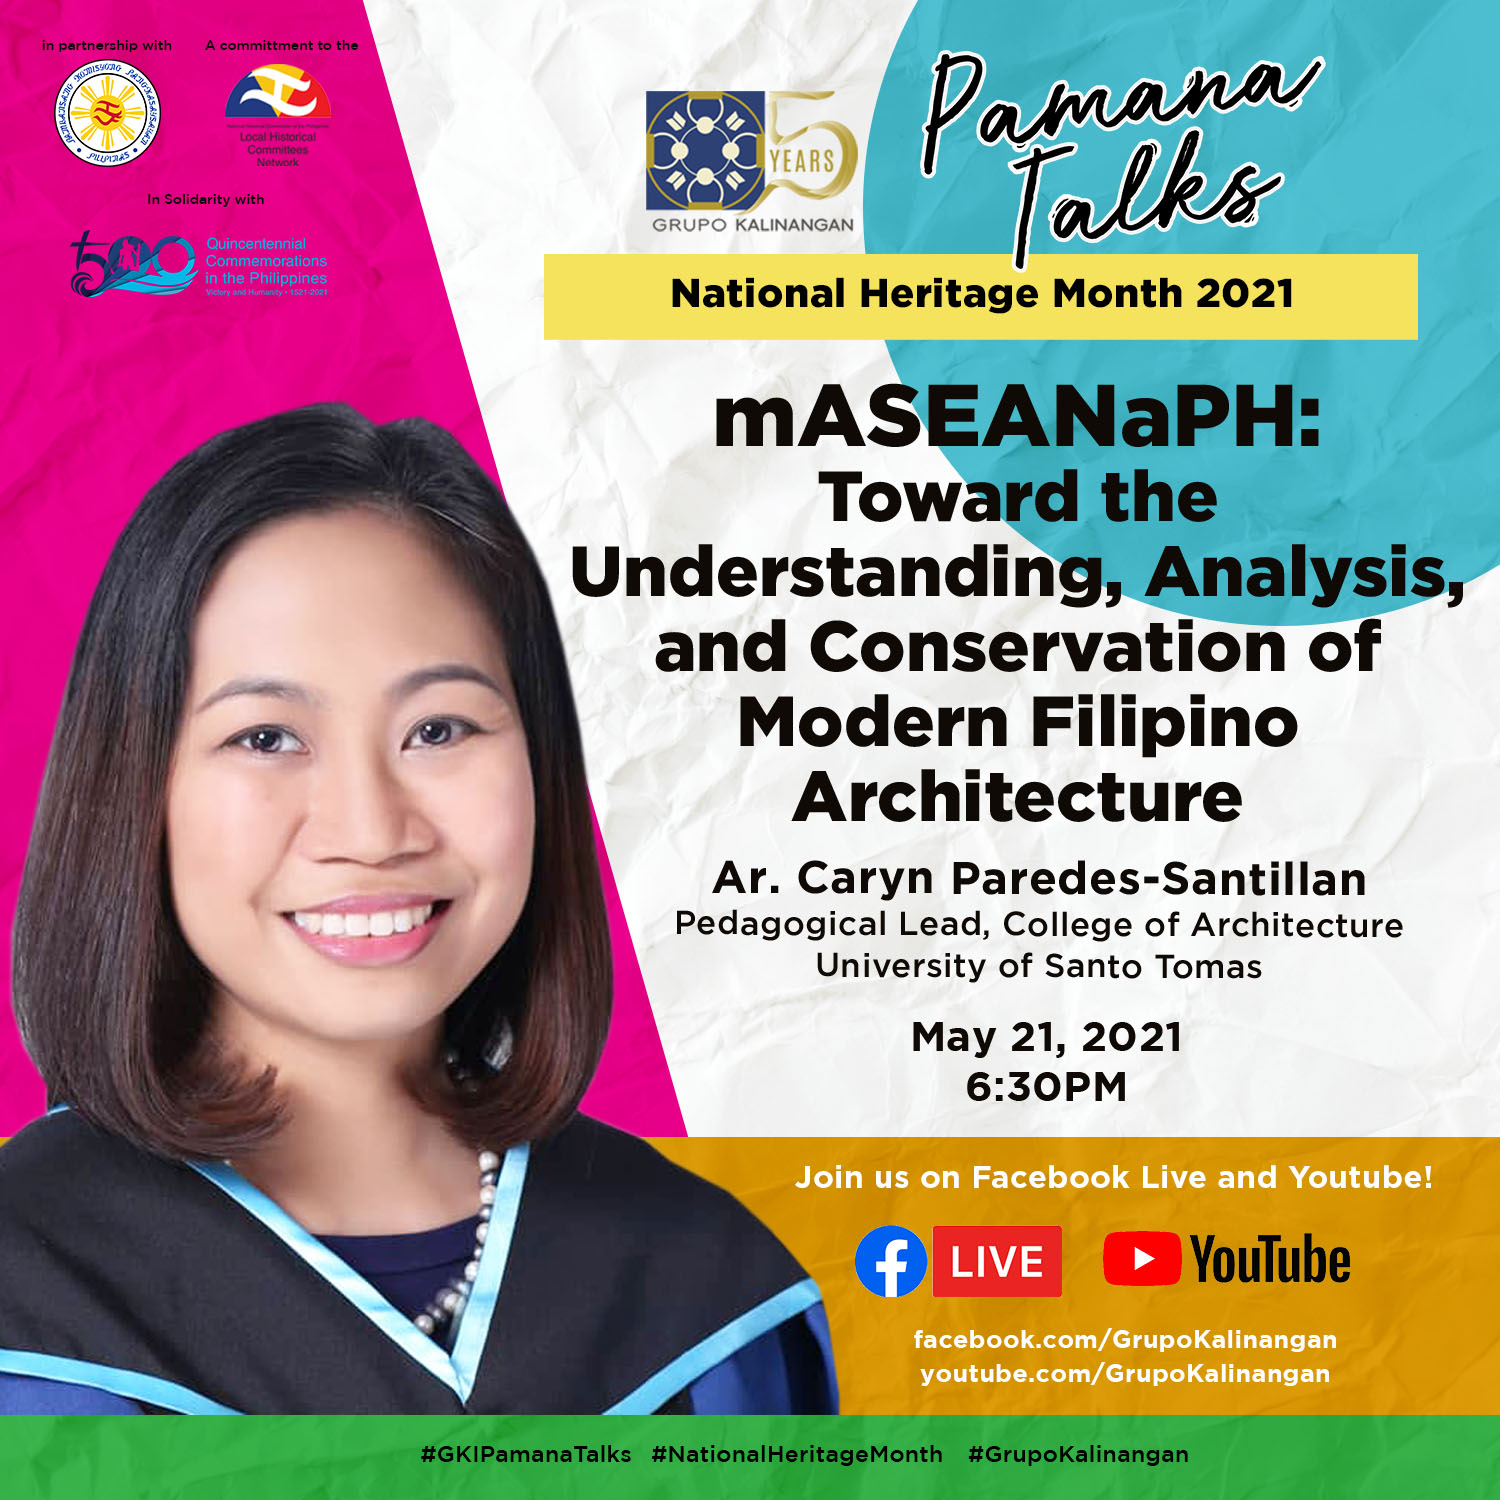 PAMANA TALKS – mASAEANaPH: Towards the Understanding, Analysis and Conservation of Modern Filipino Architecture